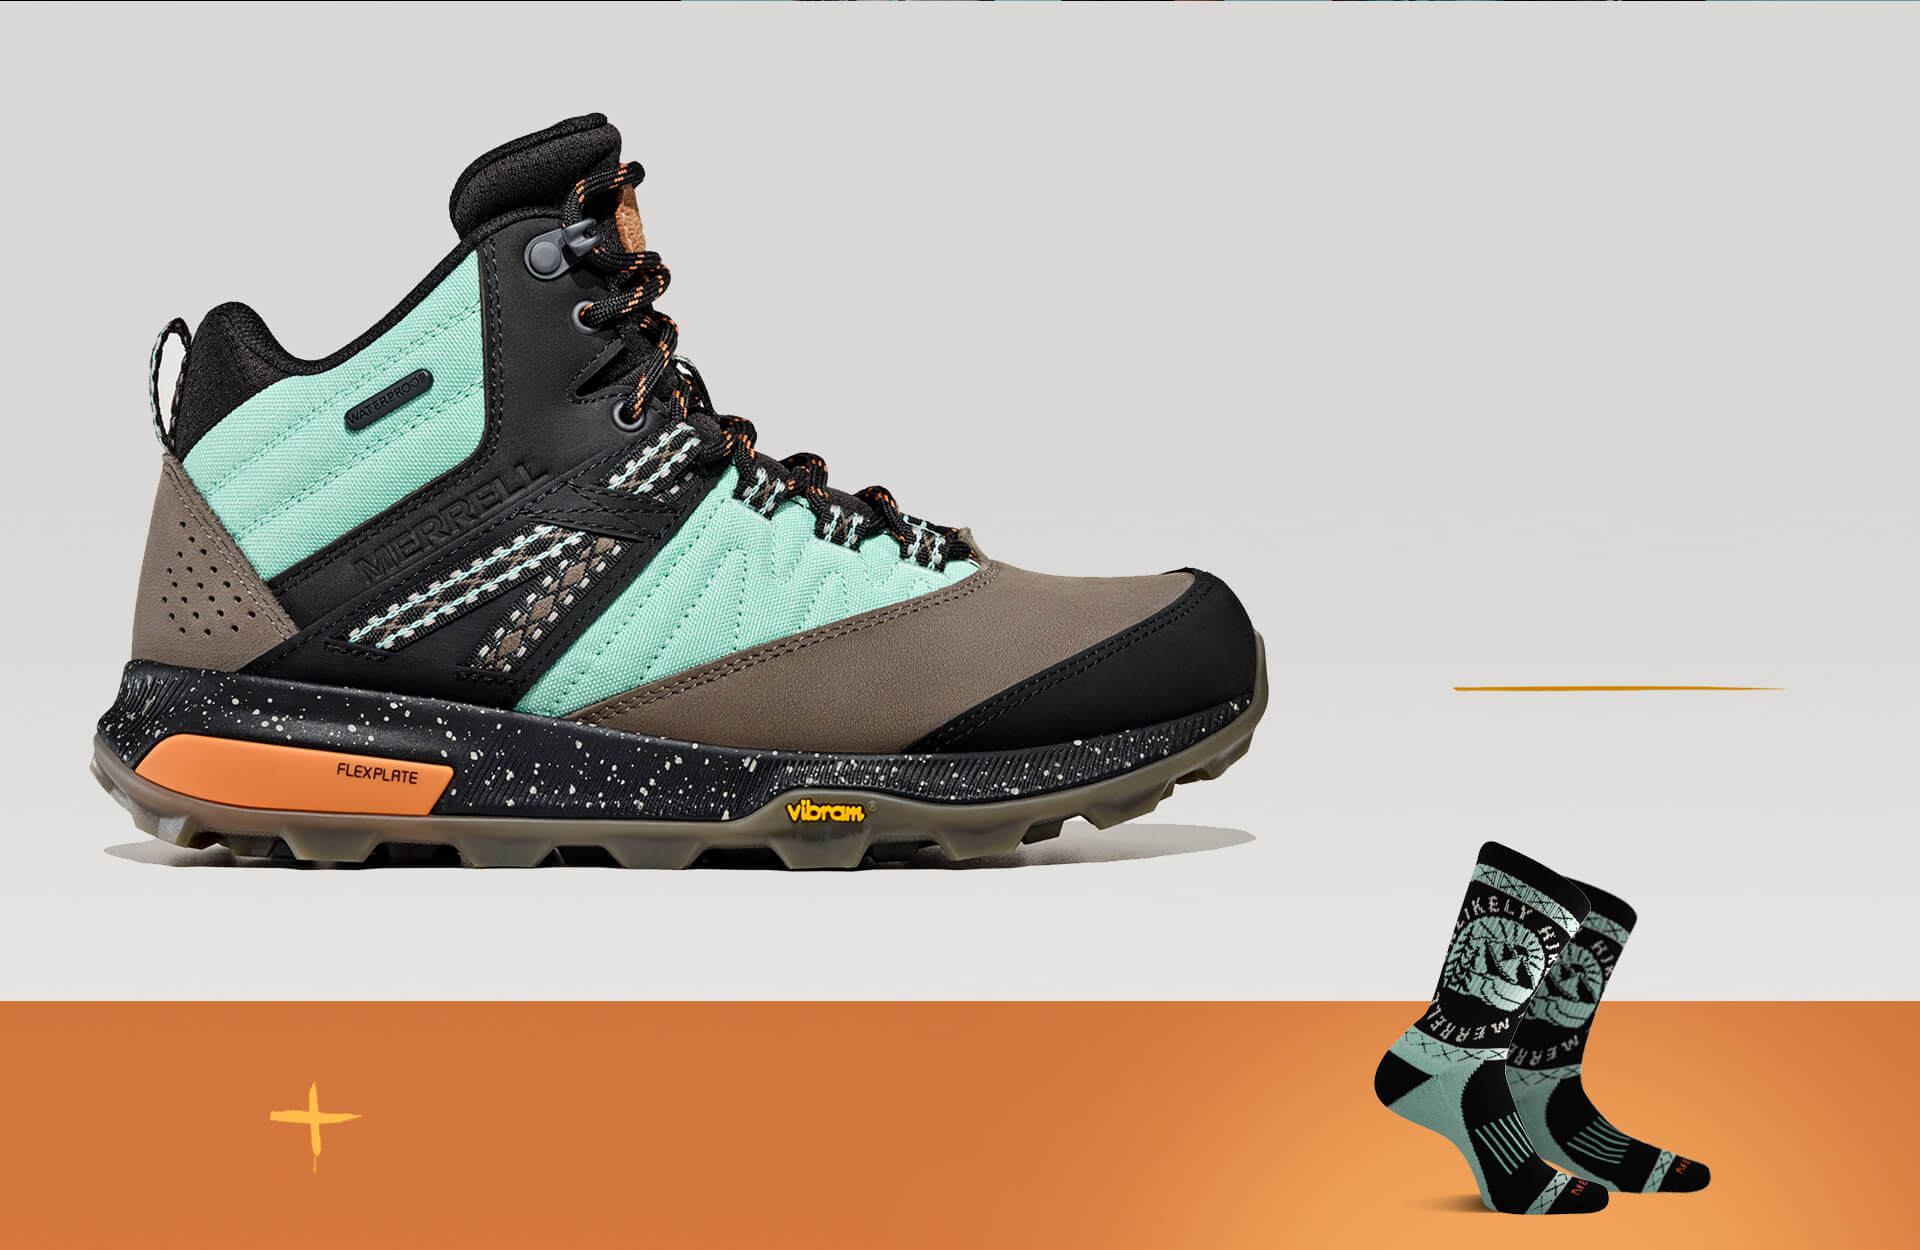 Zion hiking shoes and Unlikely Hikers socks in matching blue and black.